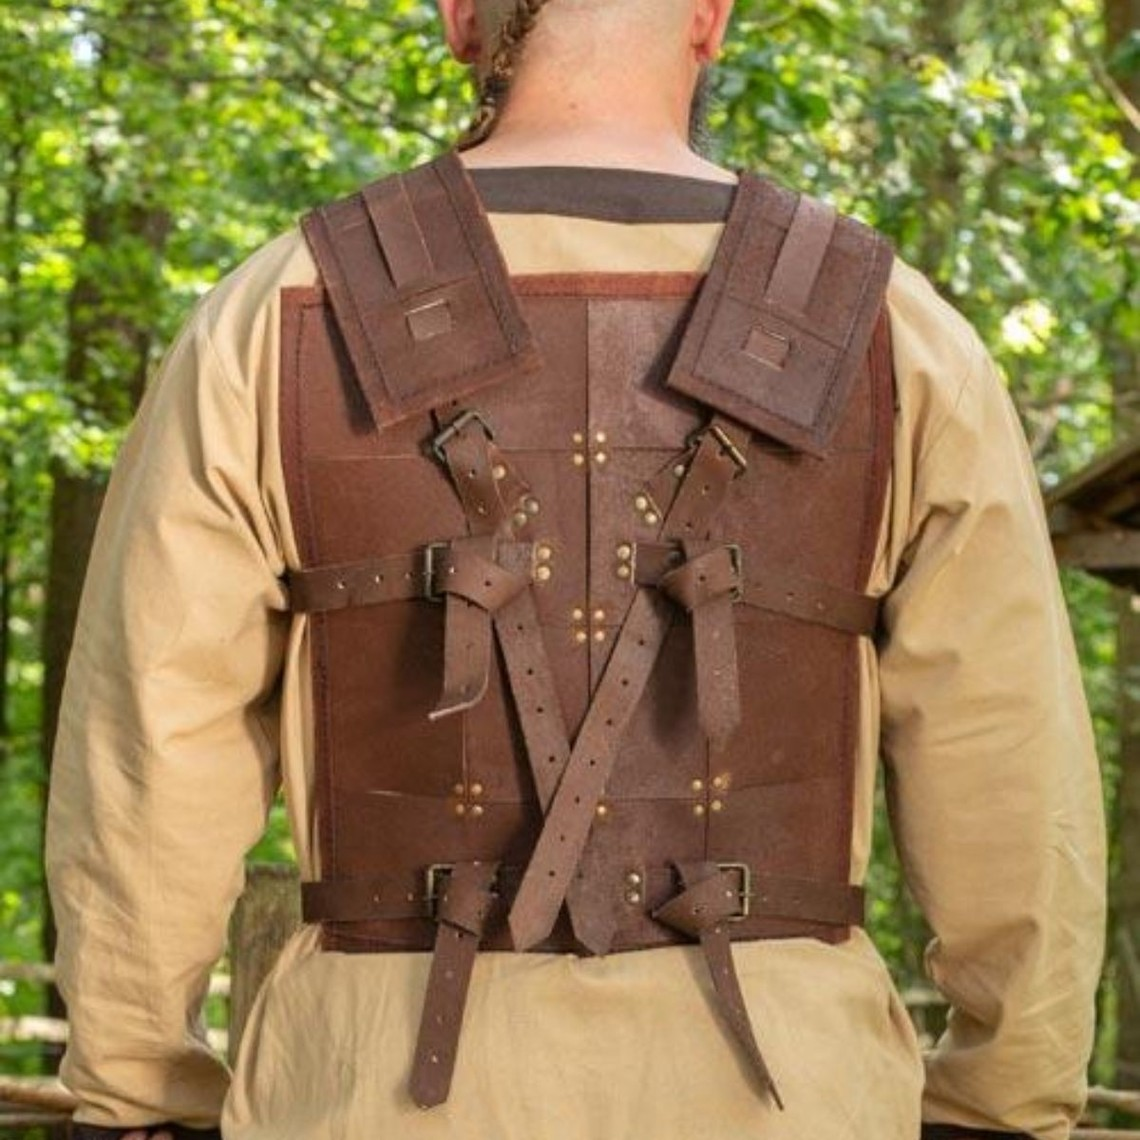 Epic Armoury RFB Fighter Leather Armor, brązowy